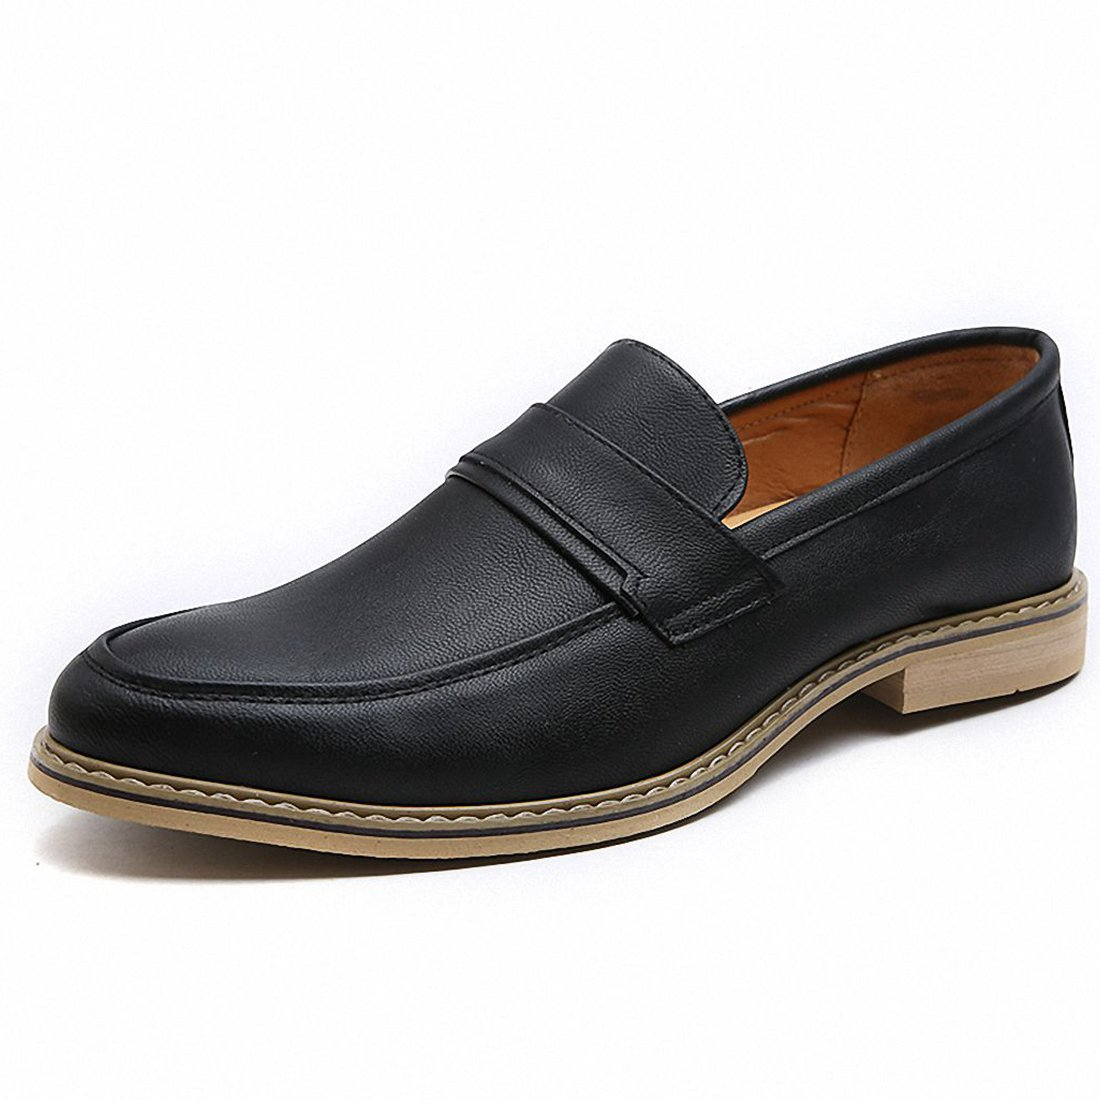 Men's Classic Leather Penny Loafer Business Driving Slip On Dress Shoes